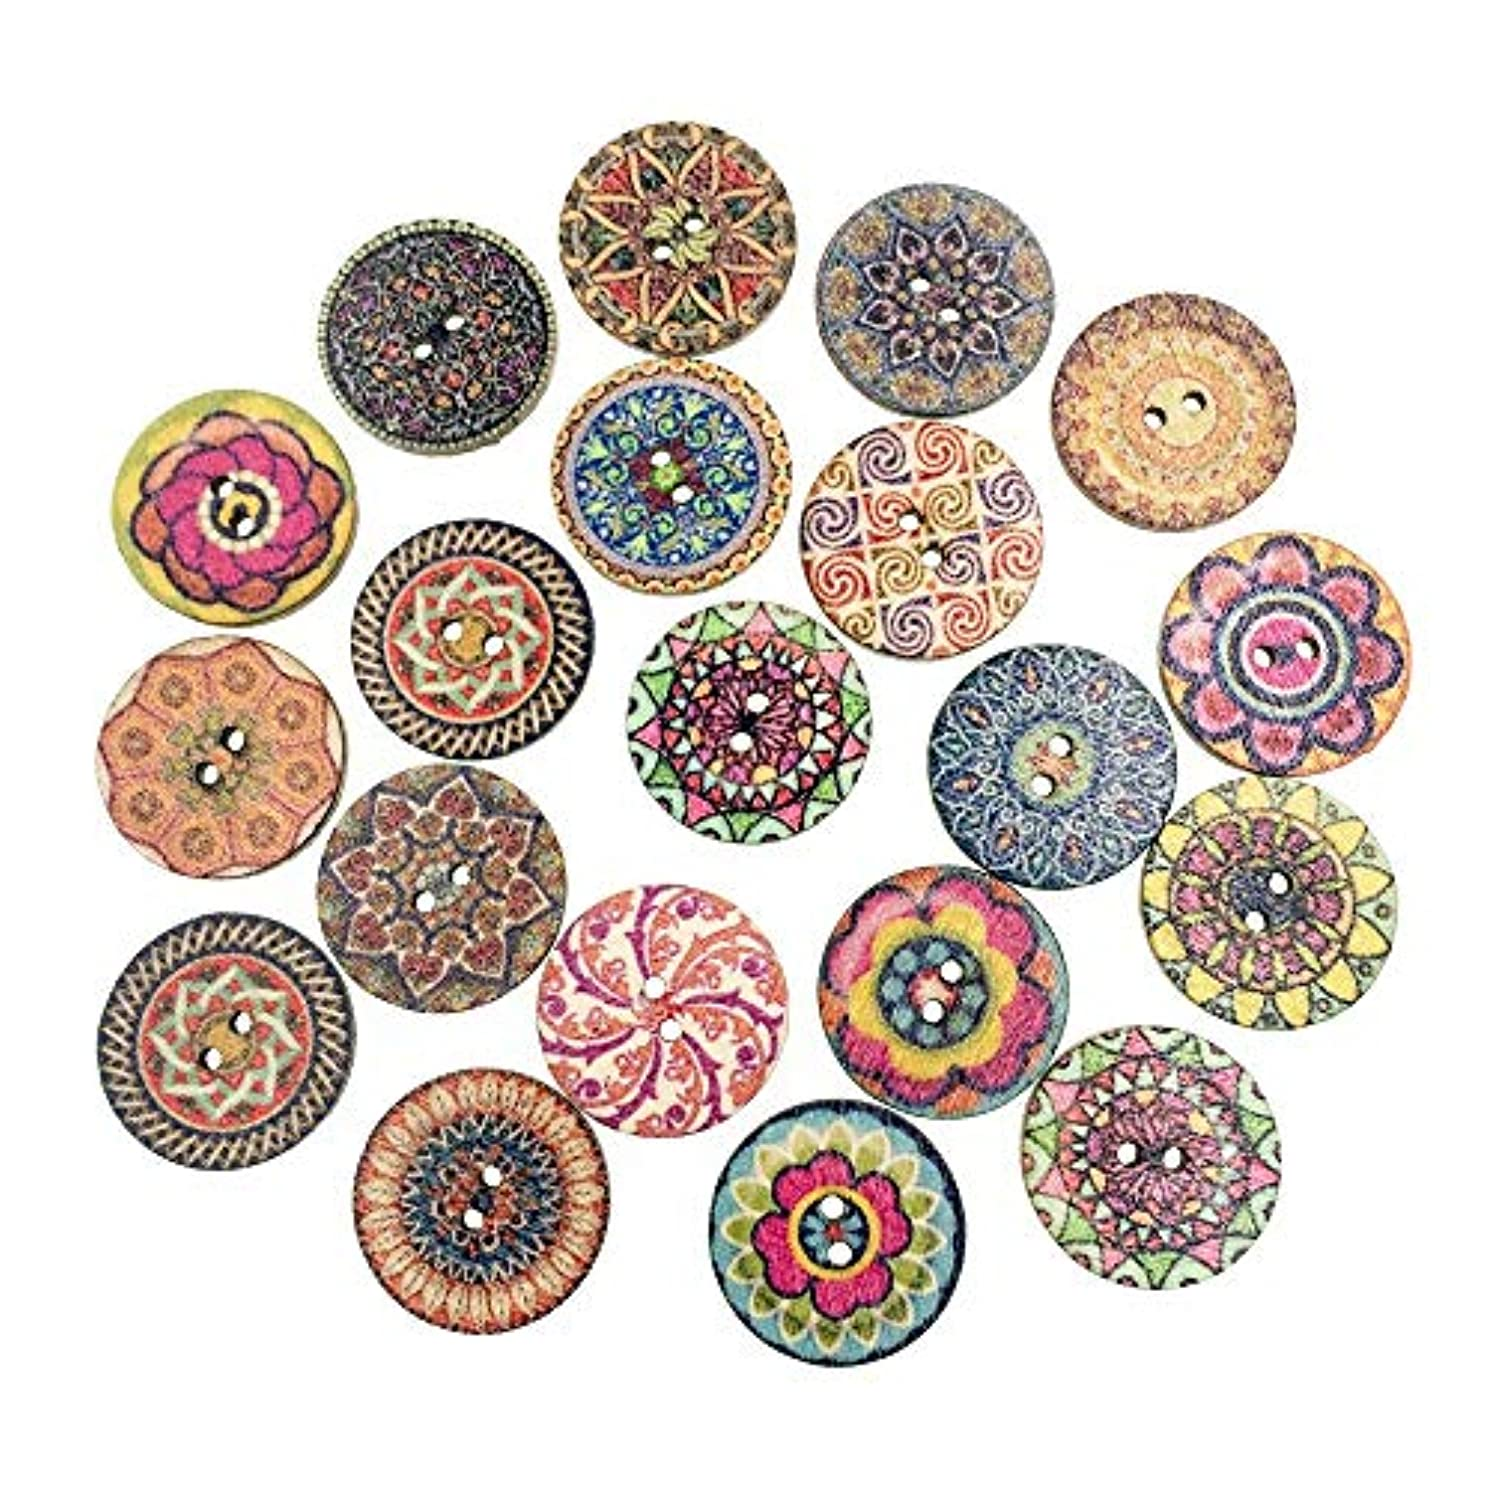 PEPPERLONELY 50PC 25mm 2 Holes Round Flatback Colorful Wooden Buttons